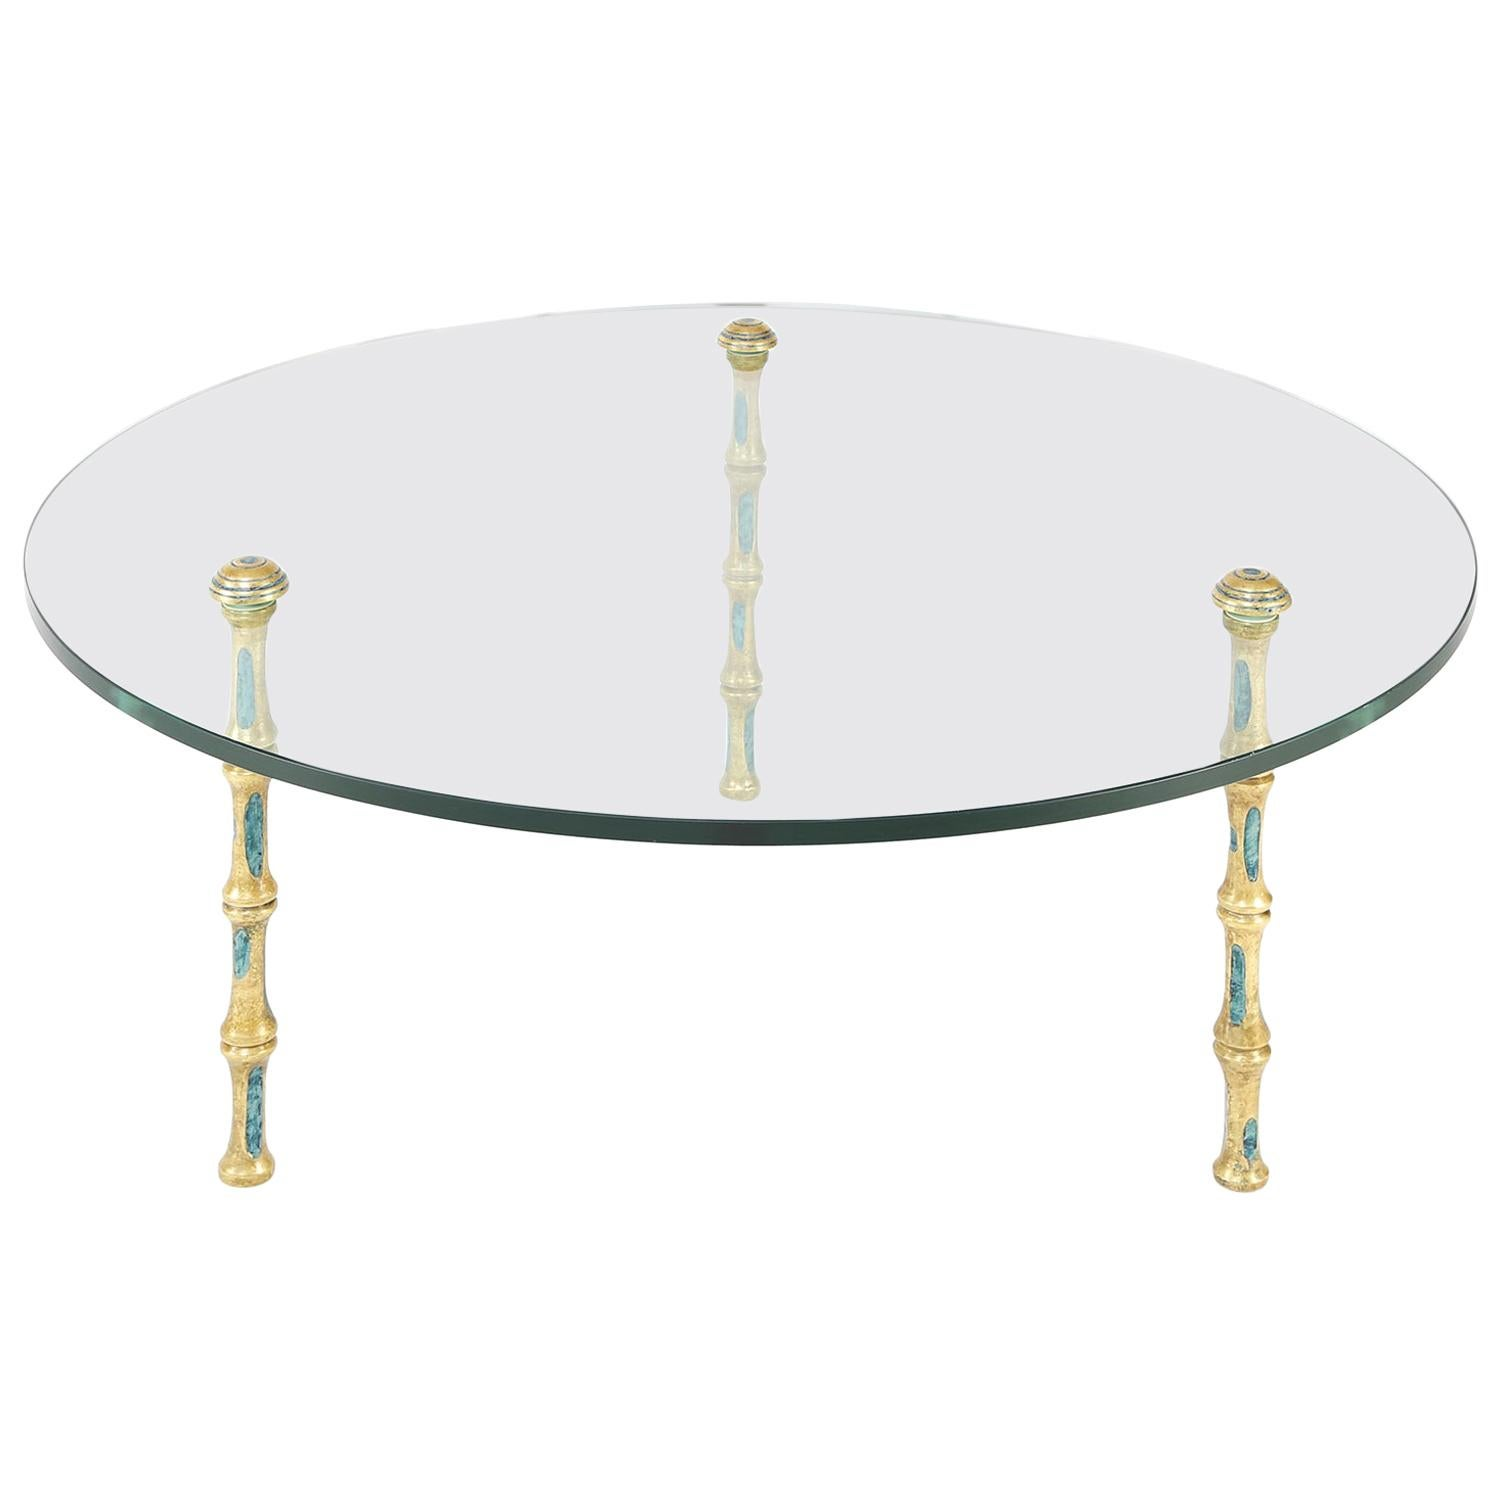 Pepe Mendoza Artisan Bronze Coffee Table with Turquoise Enamels, 1950s 'Signed'